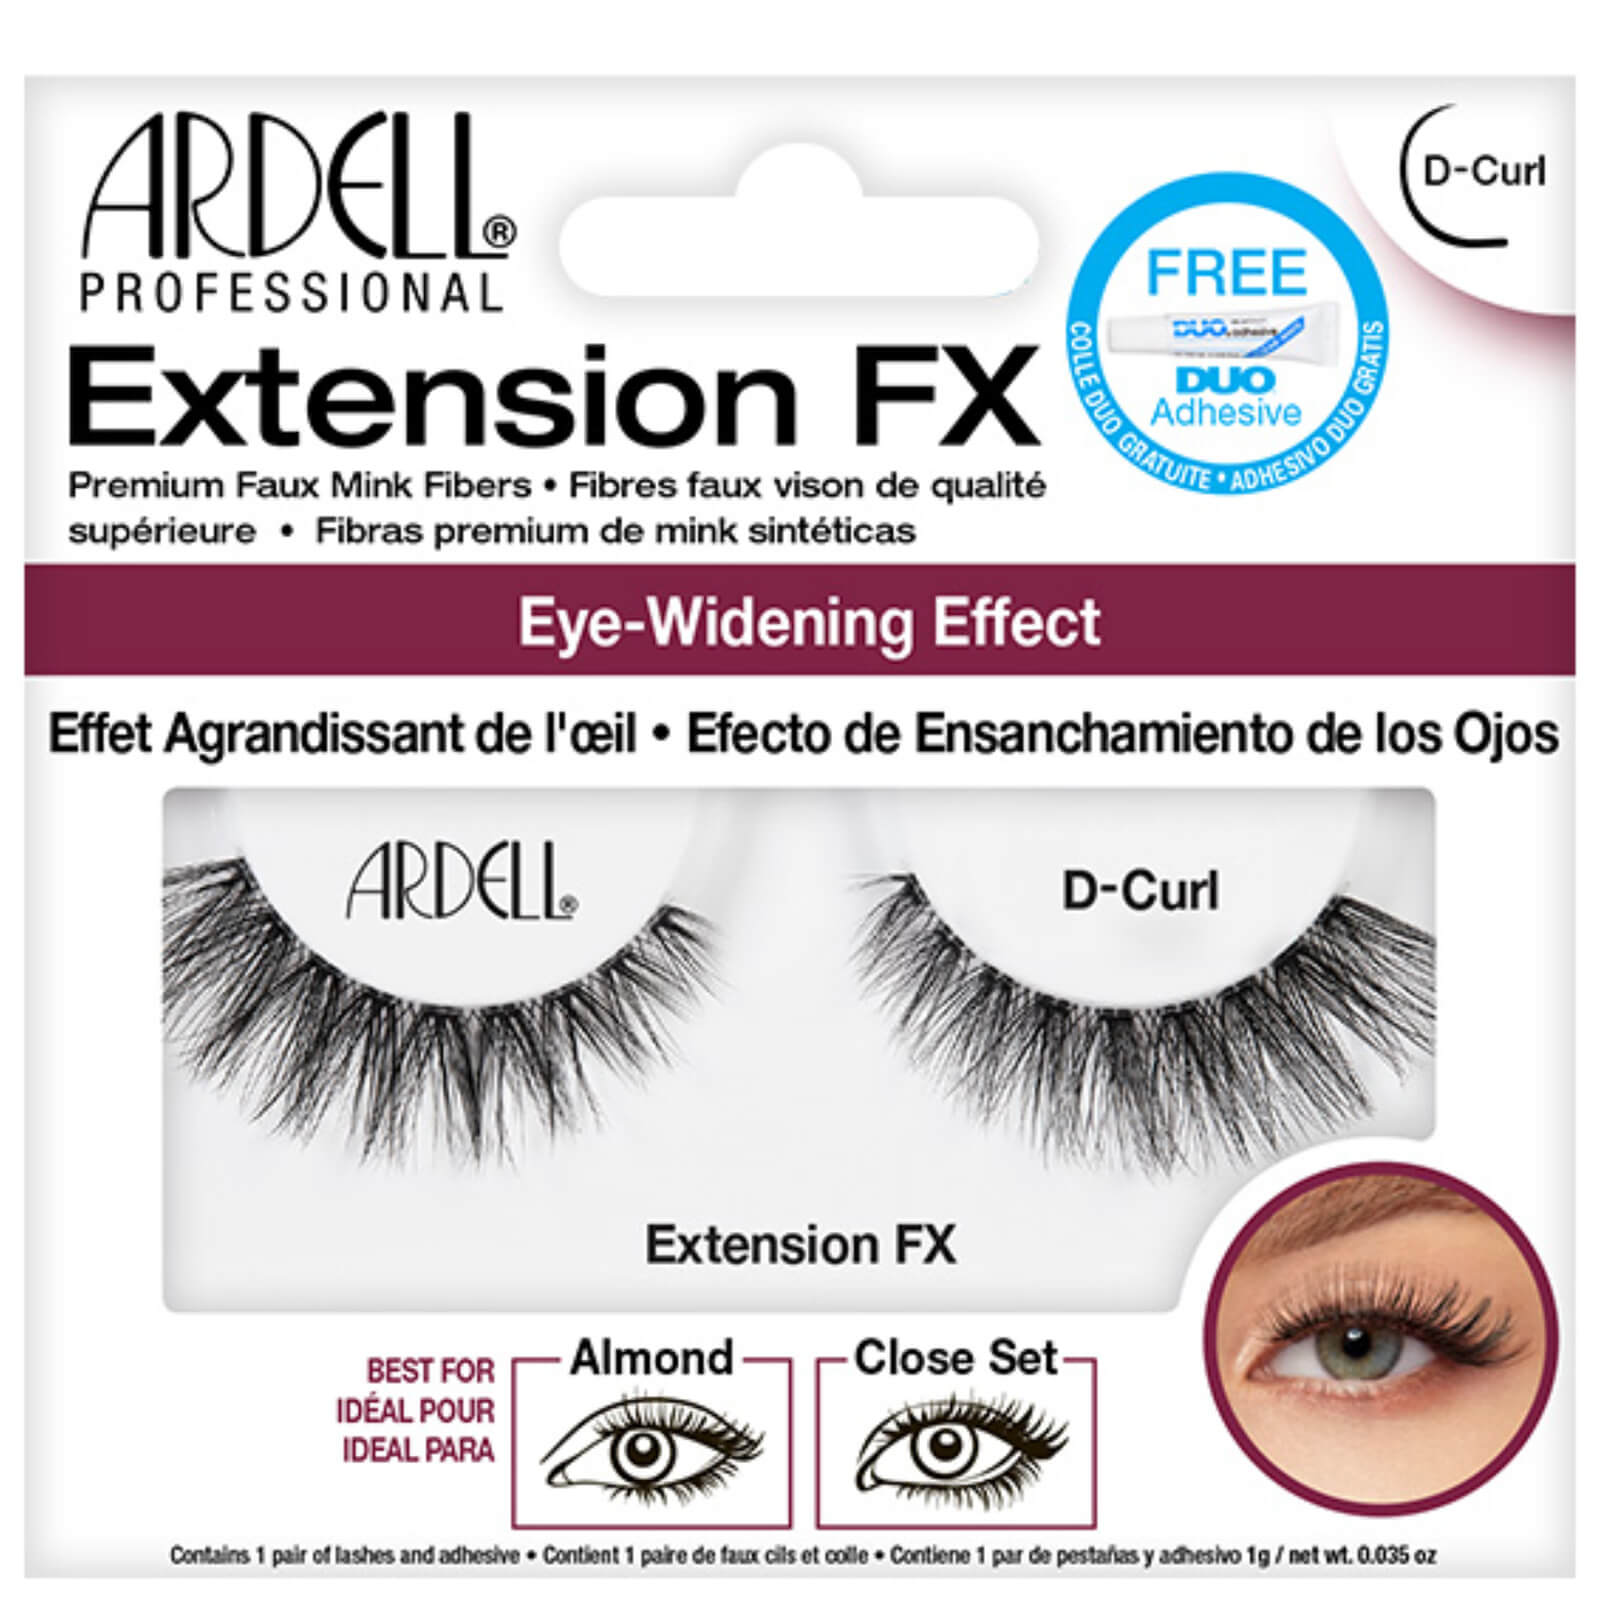 Ardell Extension Fx D Curl Free Us Shipping Lookfantastic